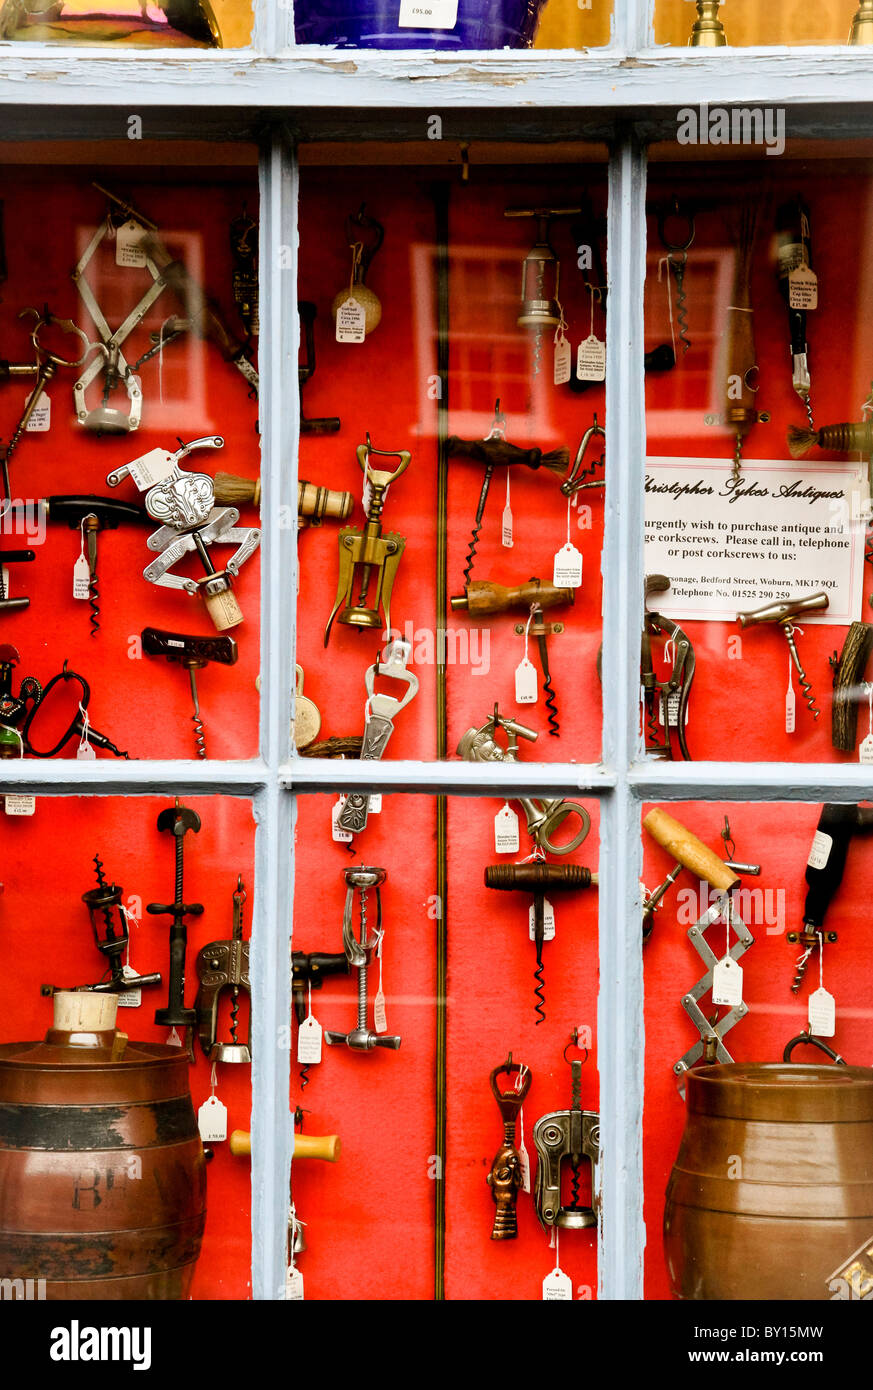 A shop store window with a display of old antique corkscrews - Stock Image